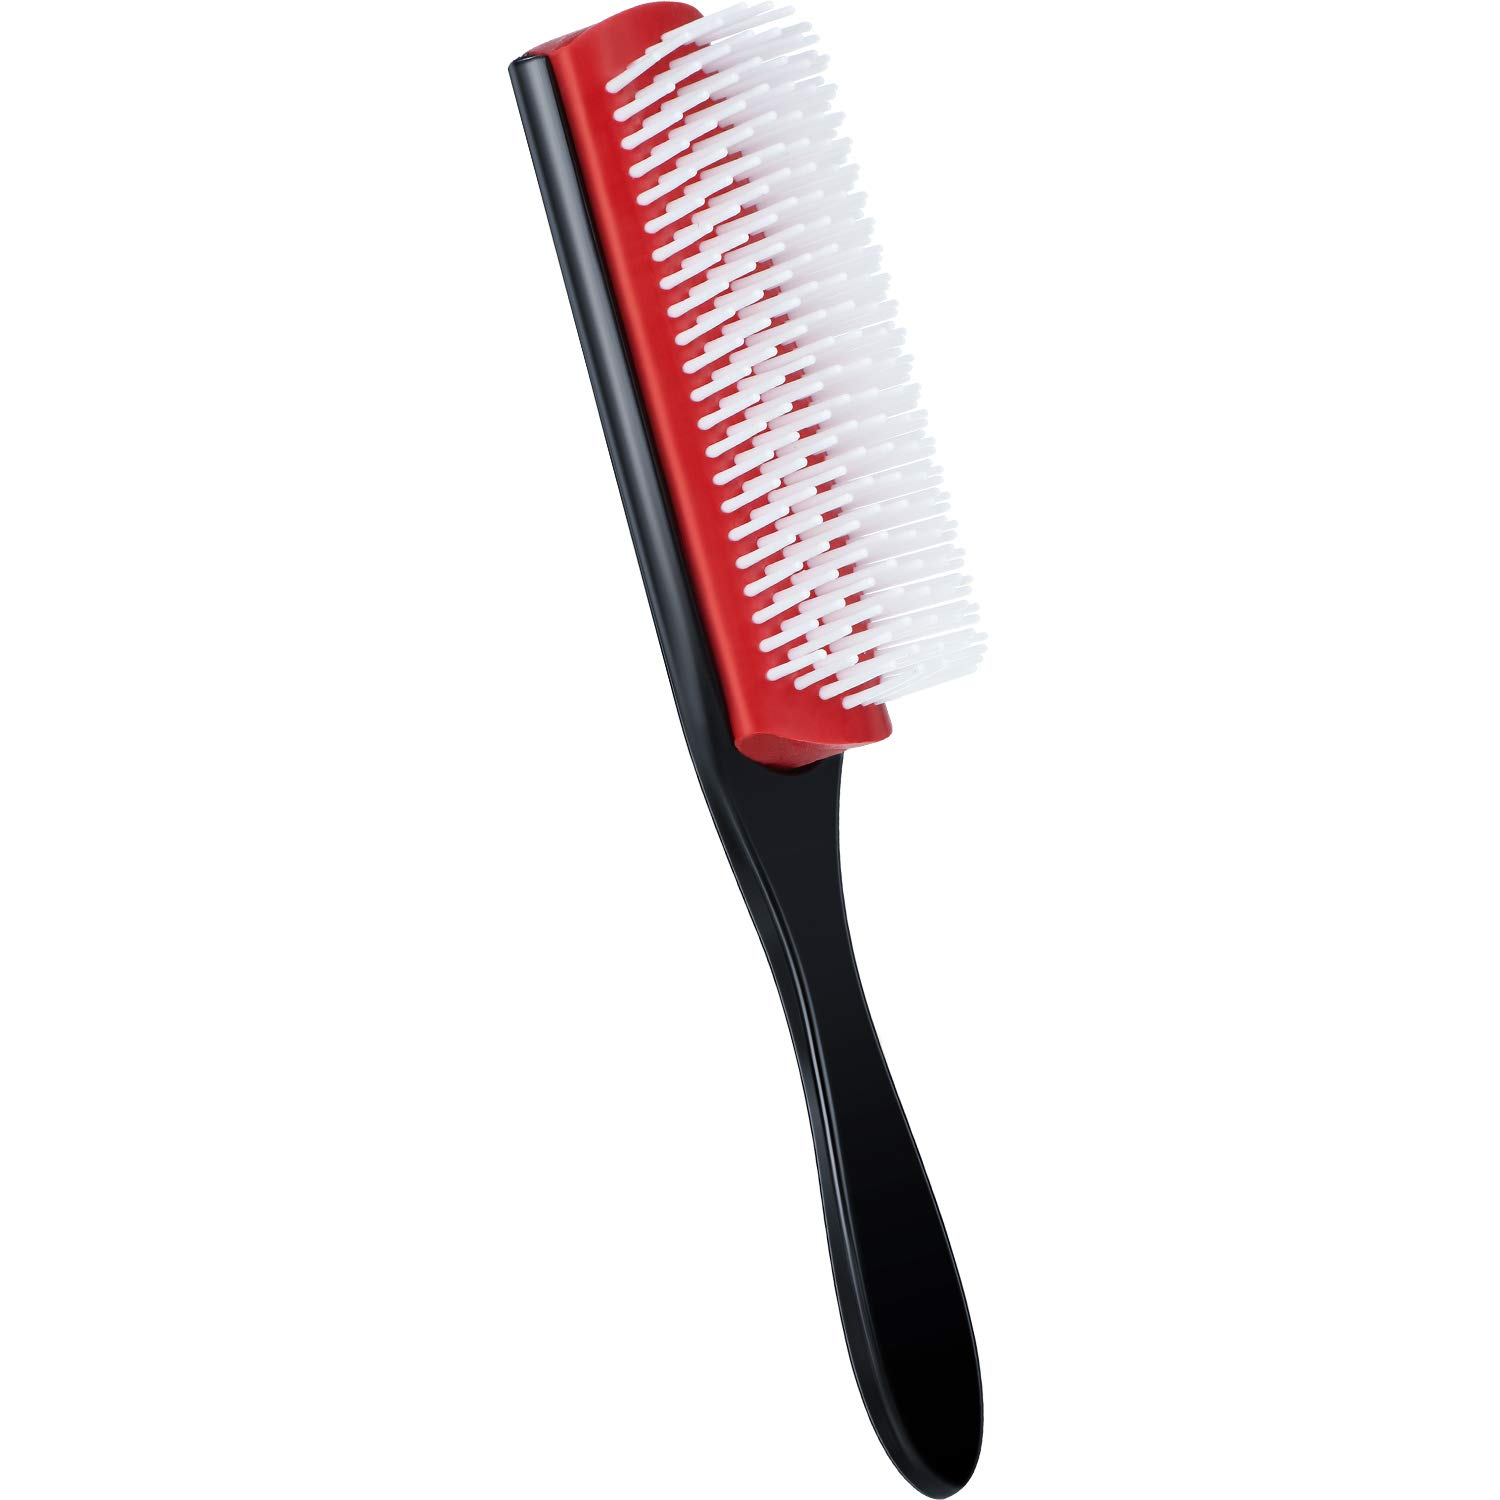 Boao 9 Row Styling Brush 9 Row Bristles Styling Hairbrush 9 Row Hair Comb for Blow Drying Hair Styling Tool